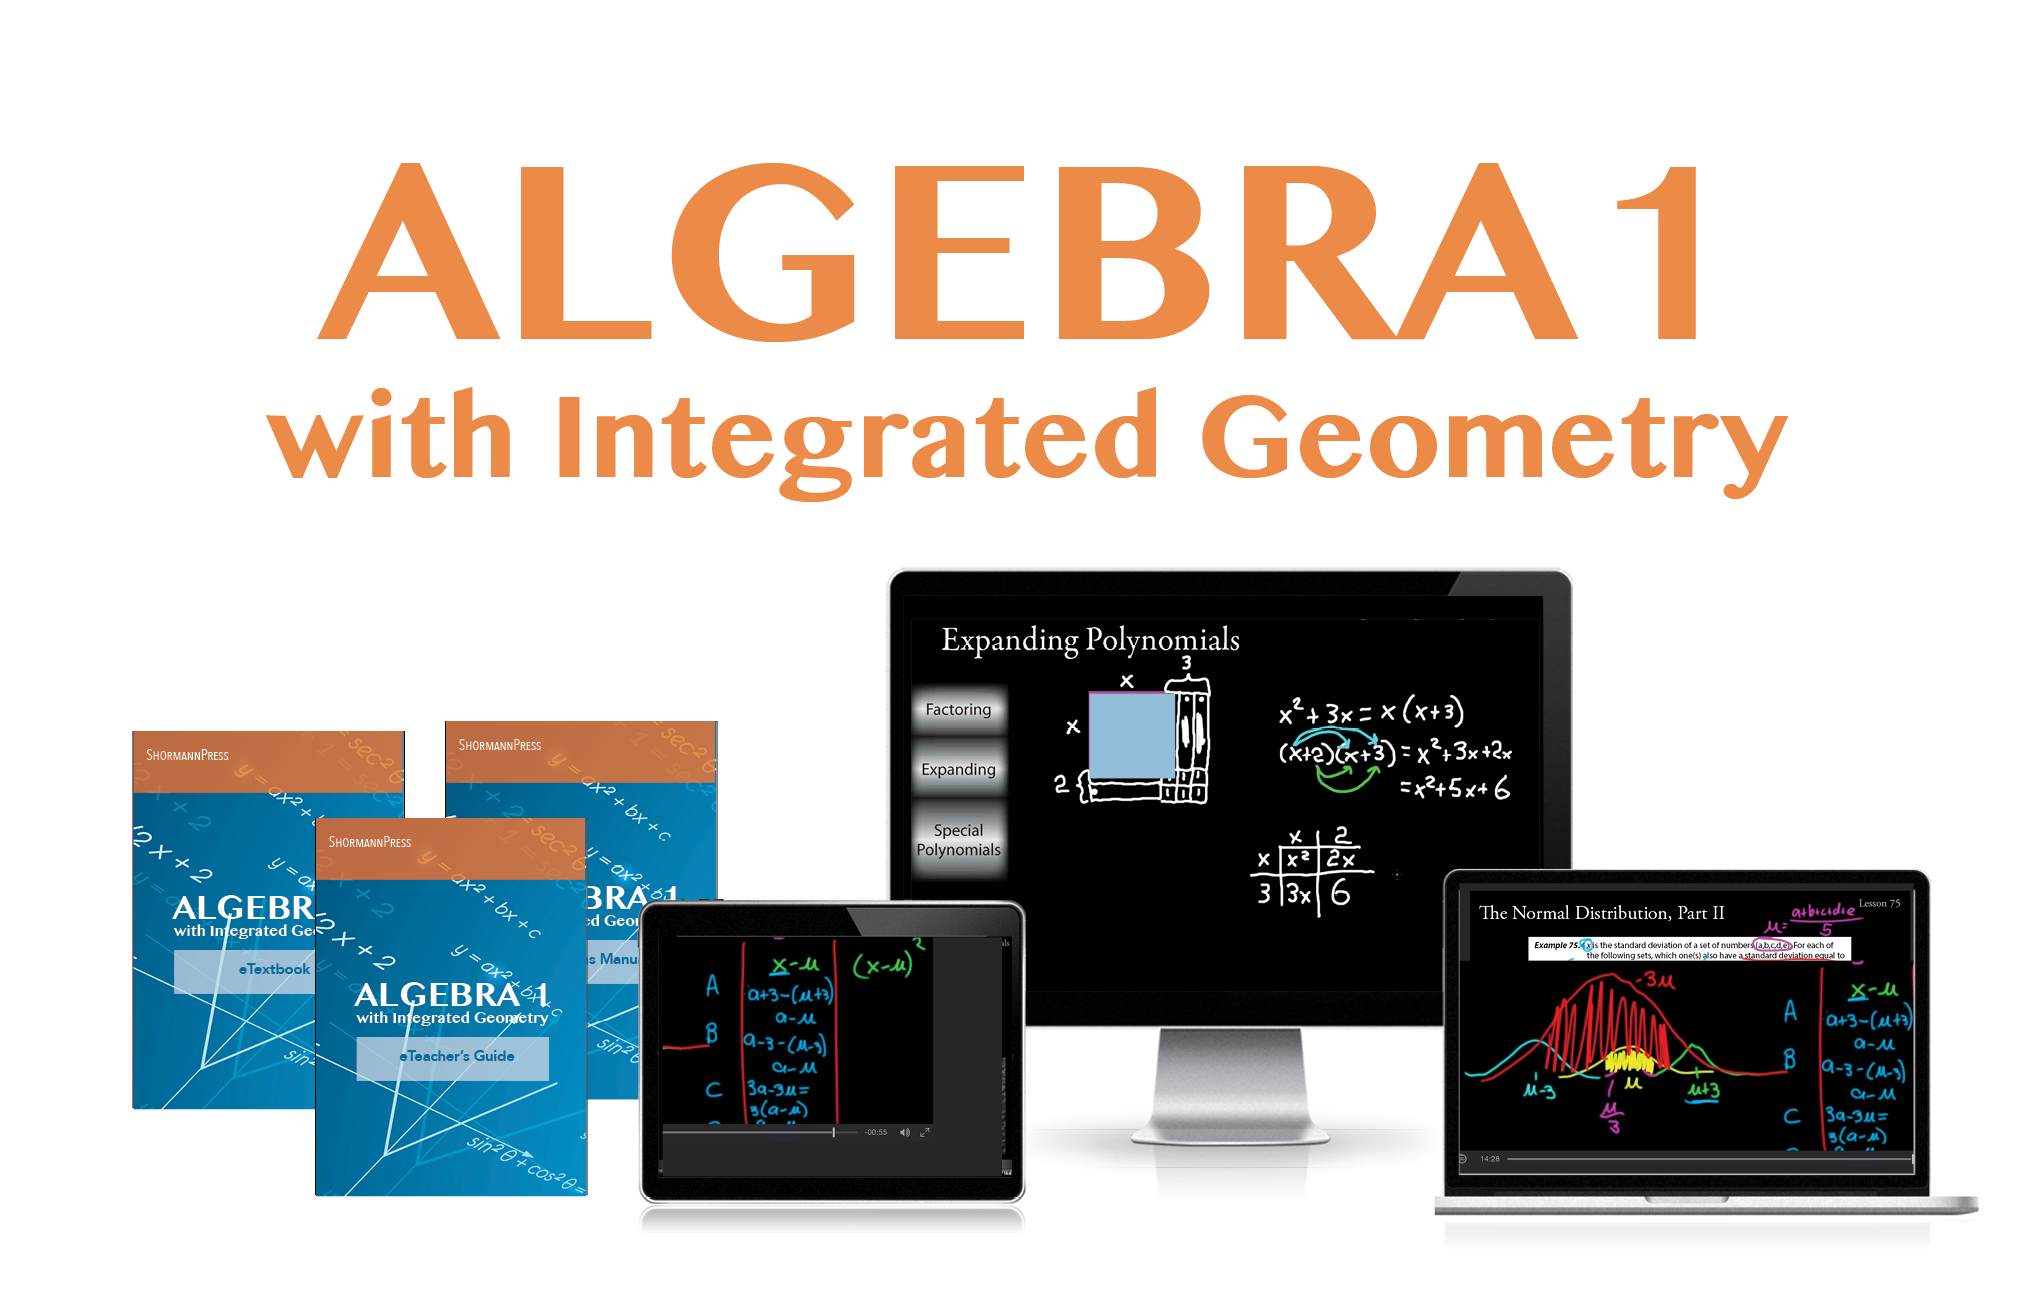 shormann-algebra-1-product-images-for-website-category-page.png